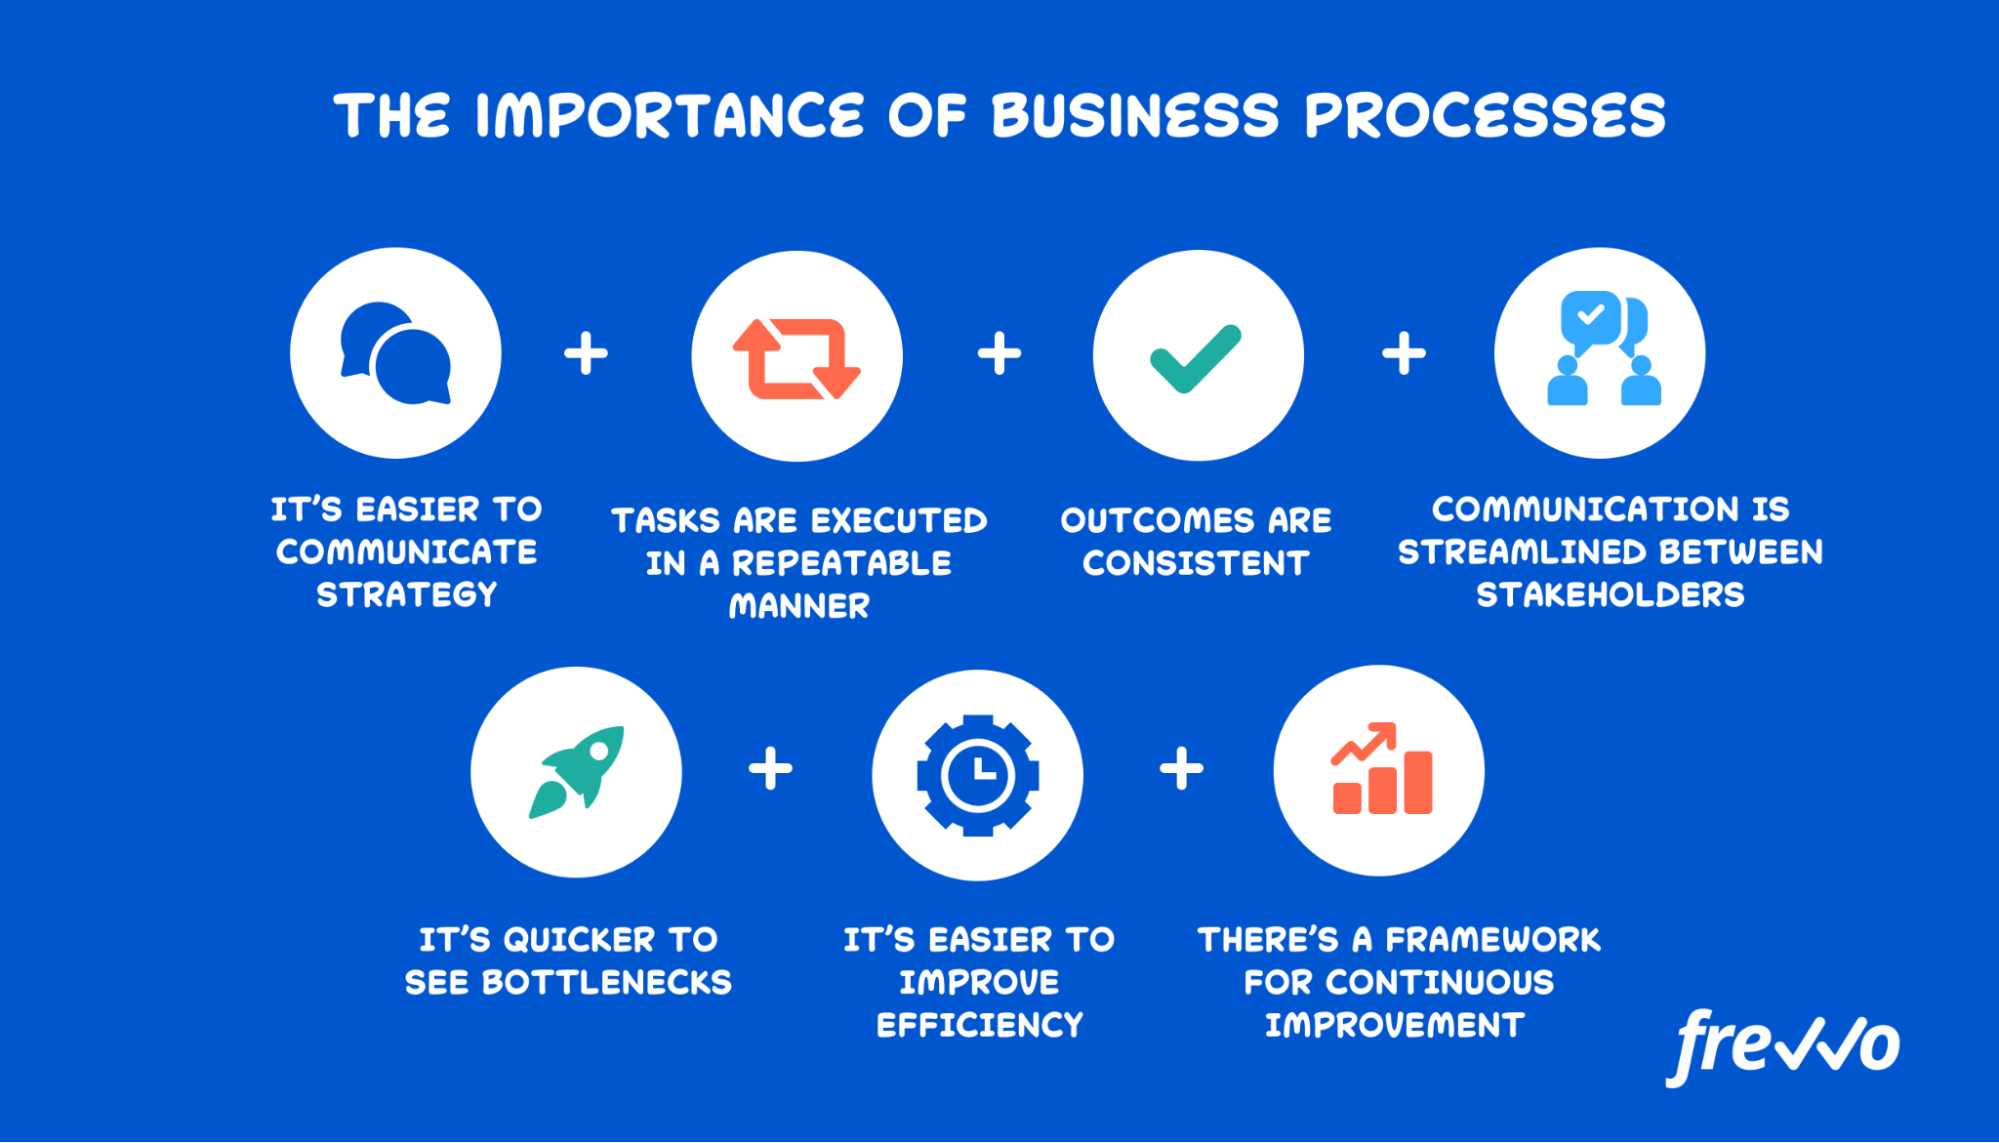 benefits of business processes